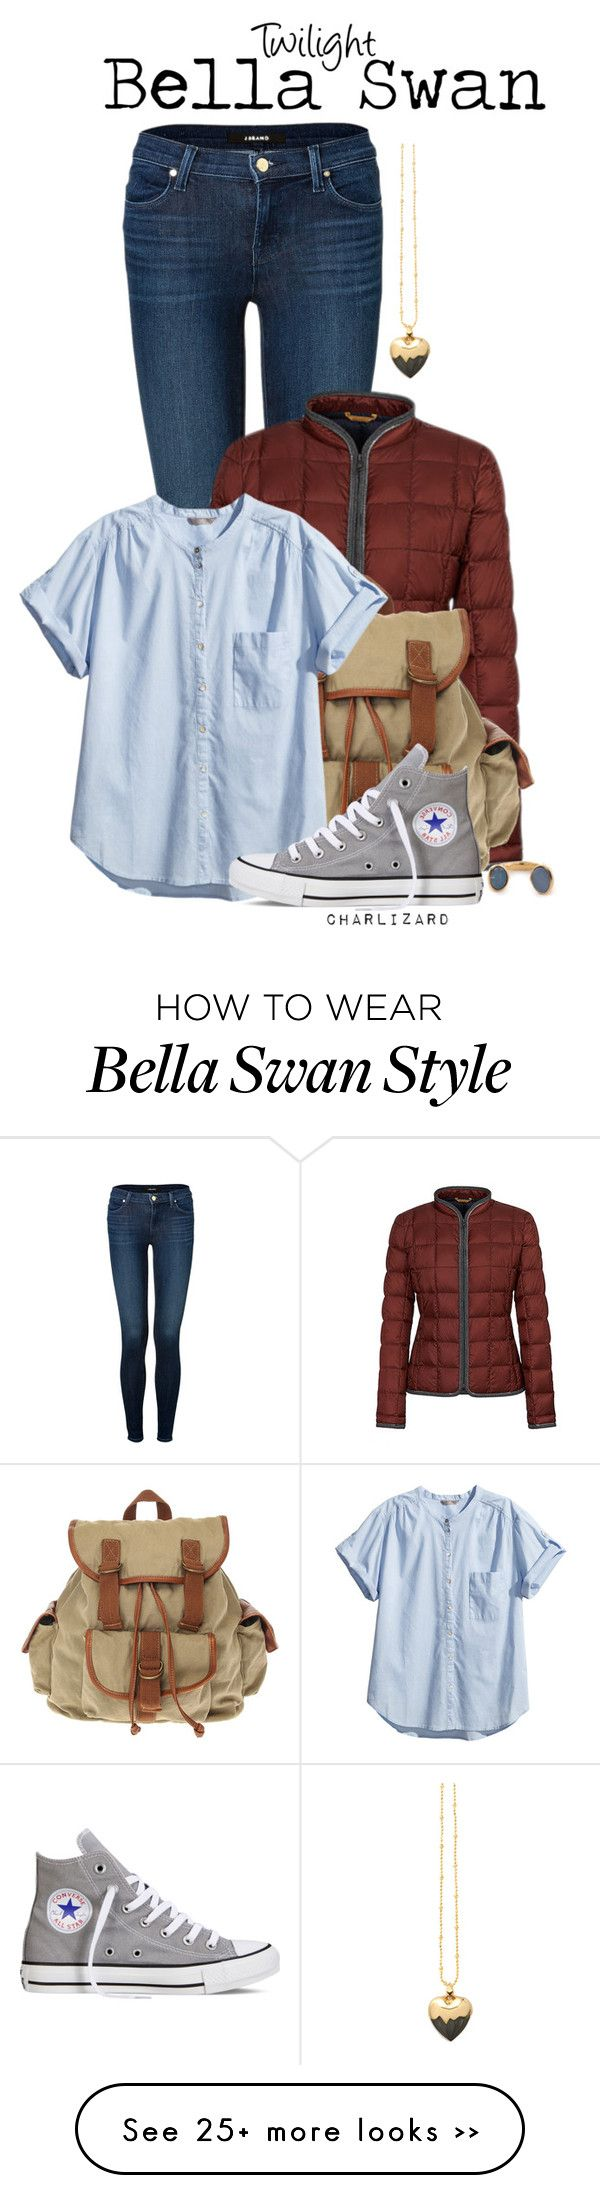 """""""Bella Swan"""" by charlizard on Polyvore"""